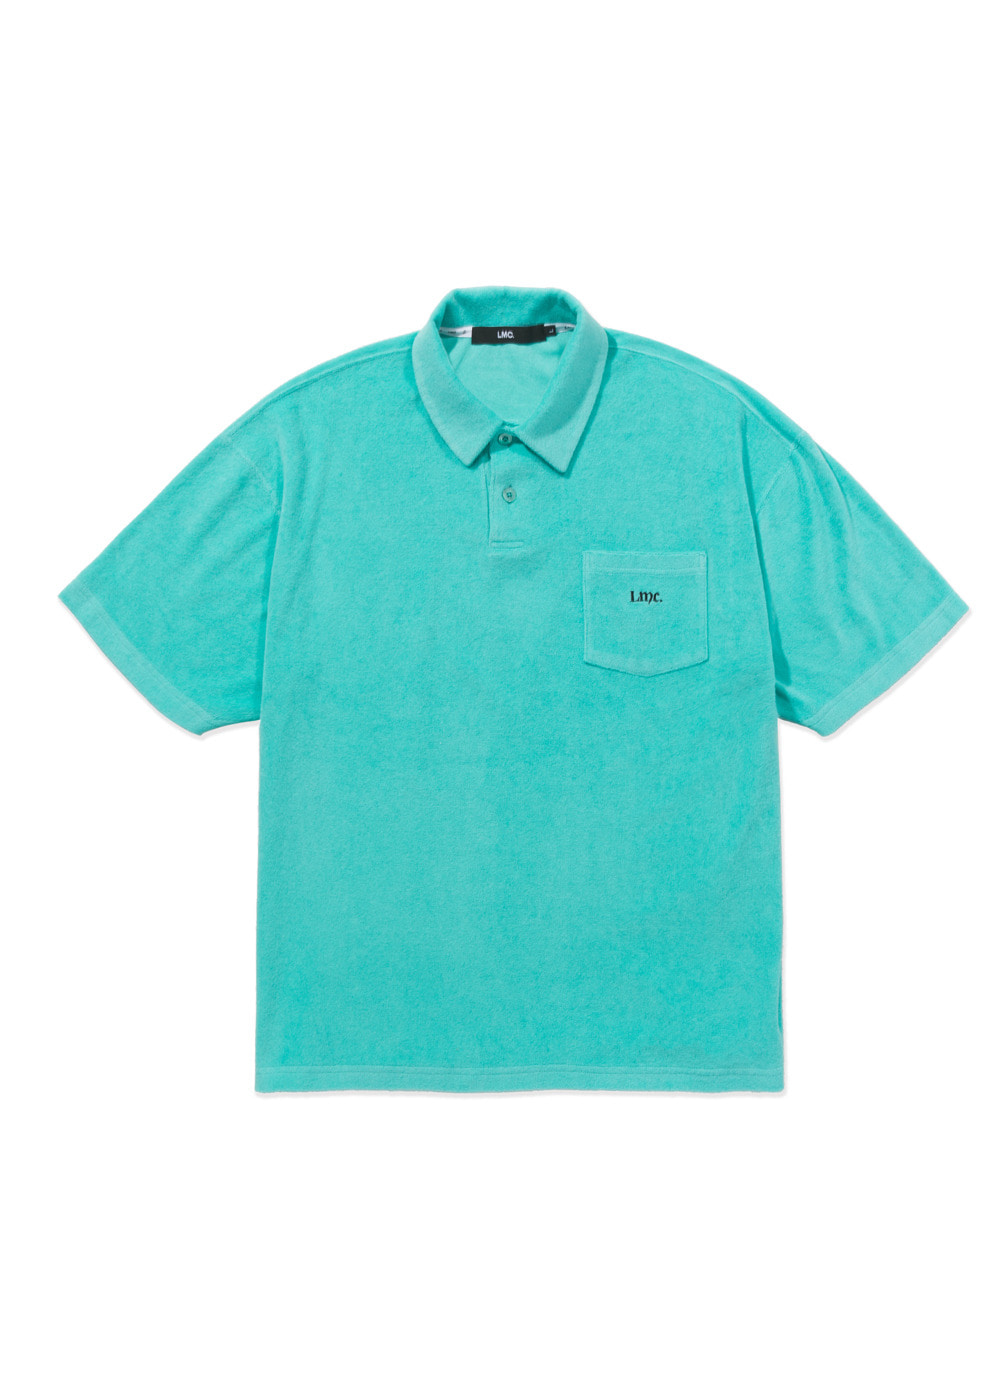 LMC OLDE OG TERRY POLO SHIRT mint